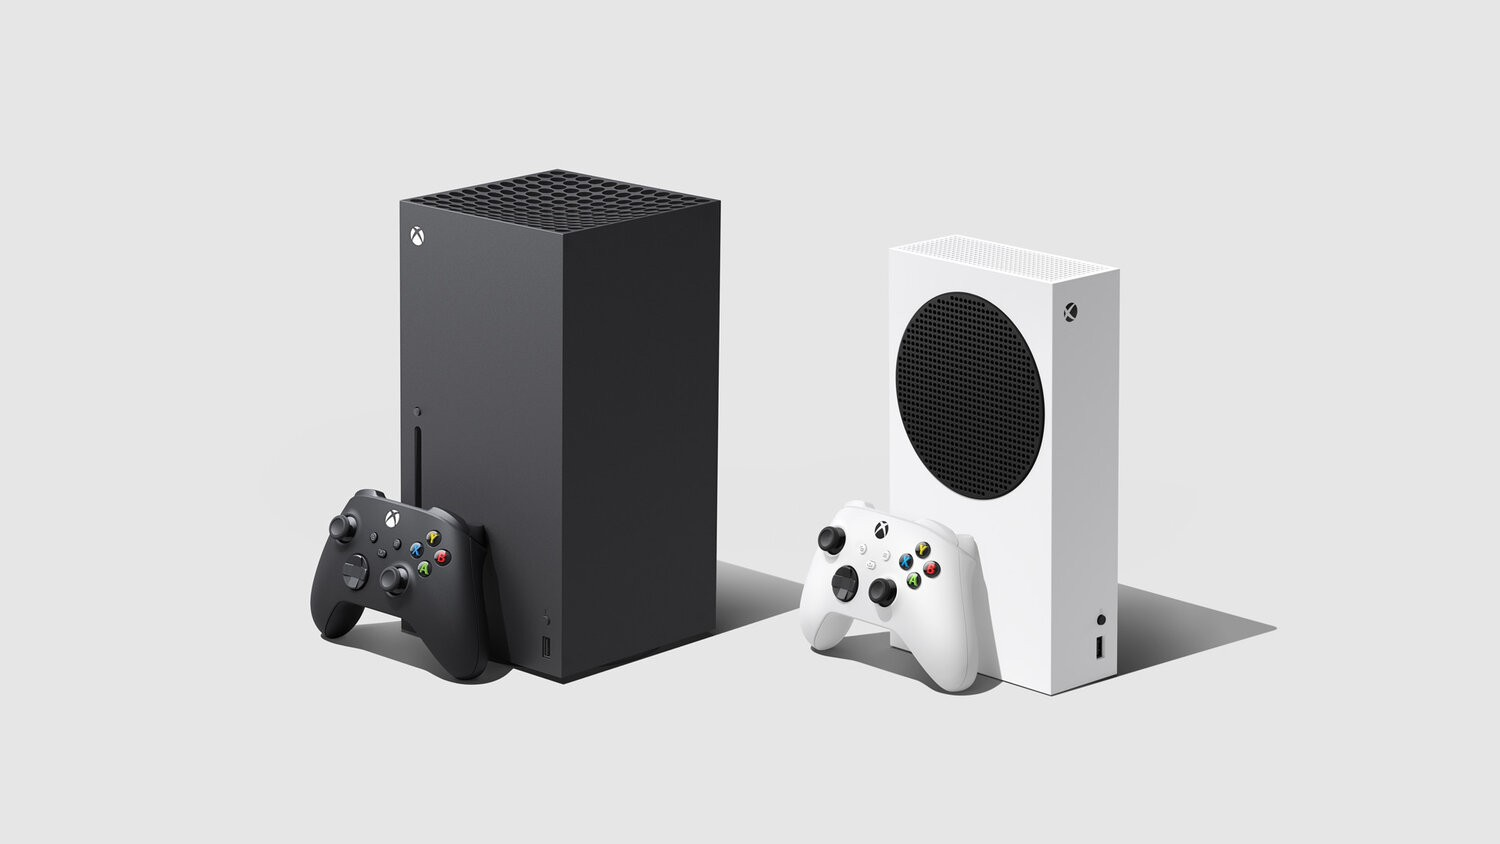 The Xbox Series X (left) and Xbox Series S (right)